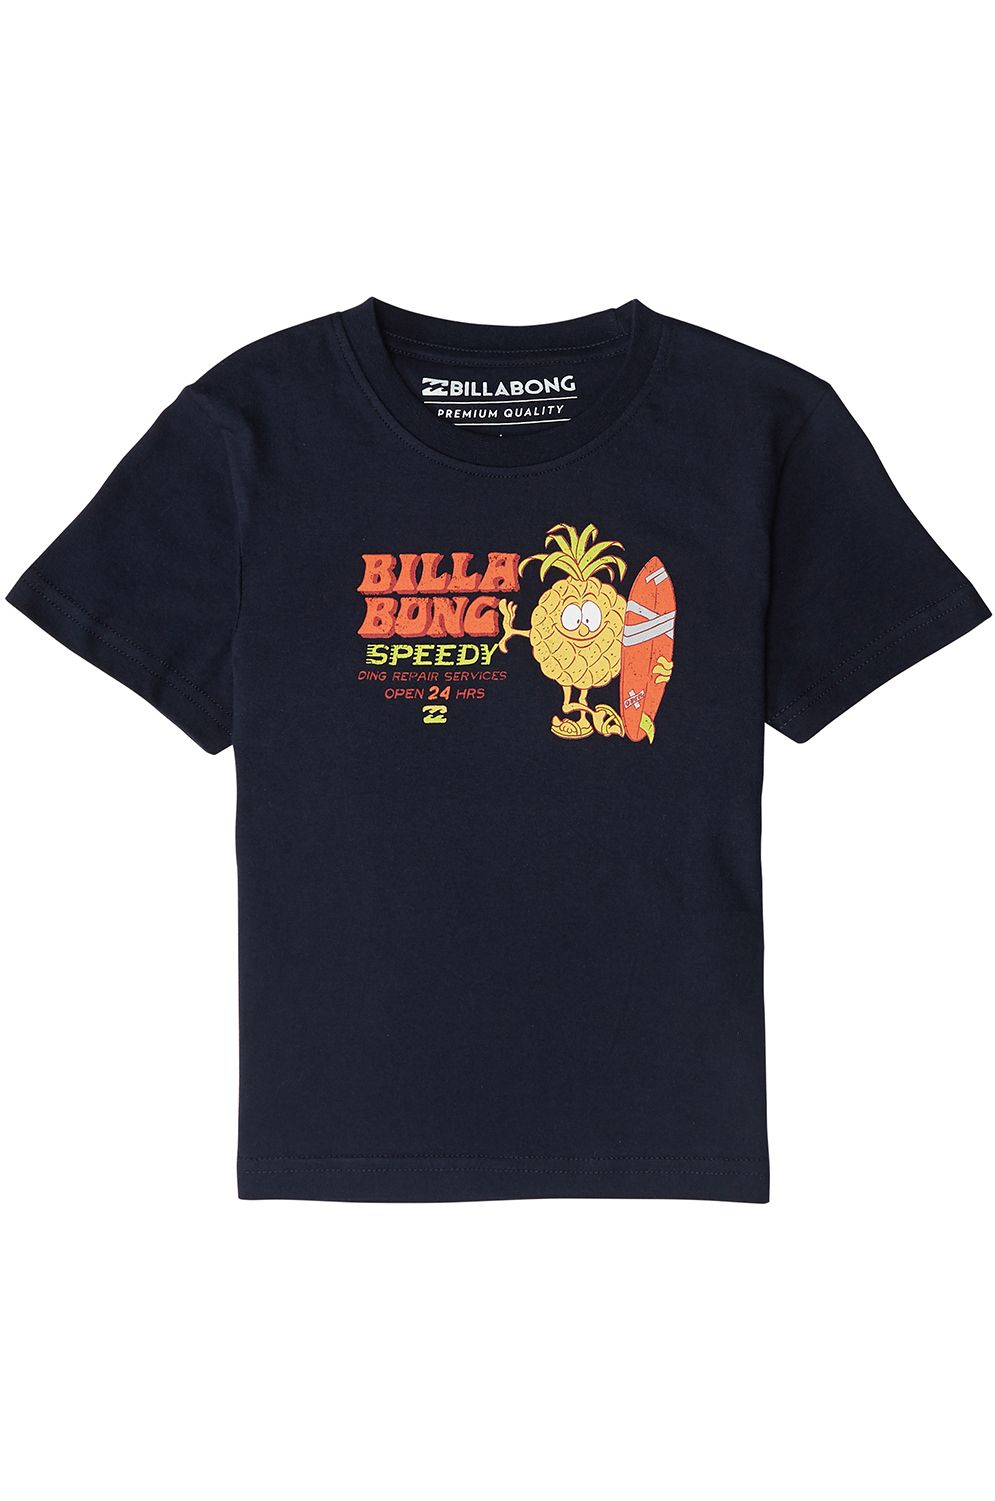 T-Shirt Billabong SPEEDY Navy